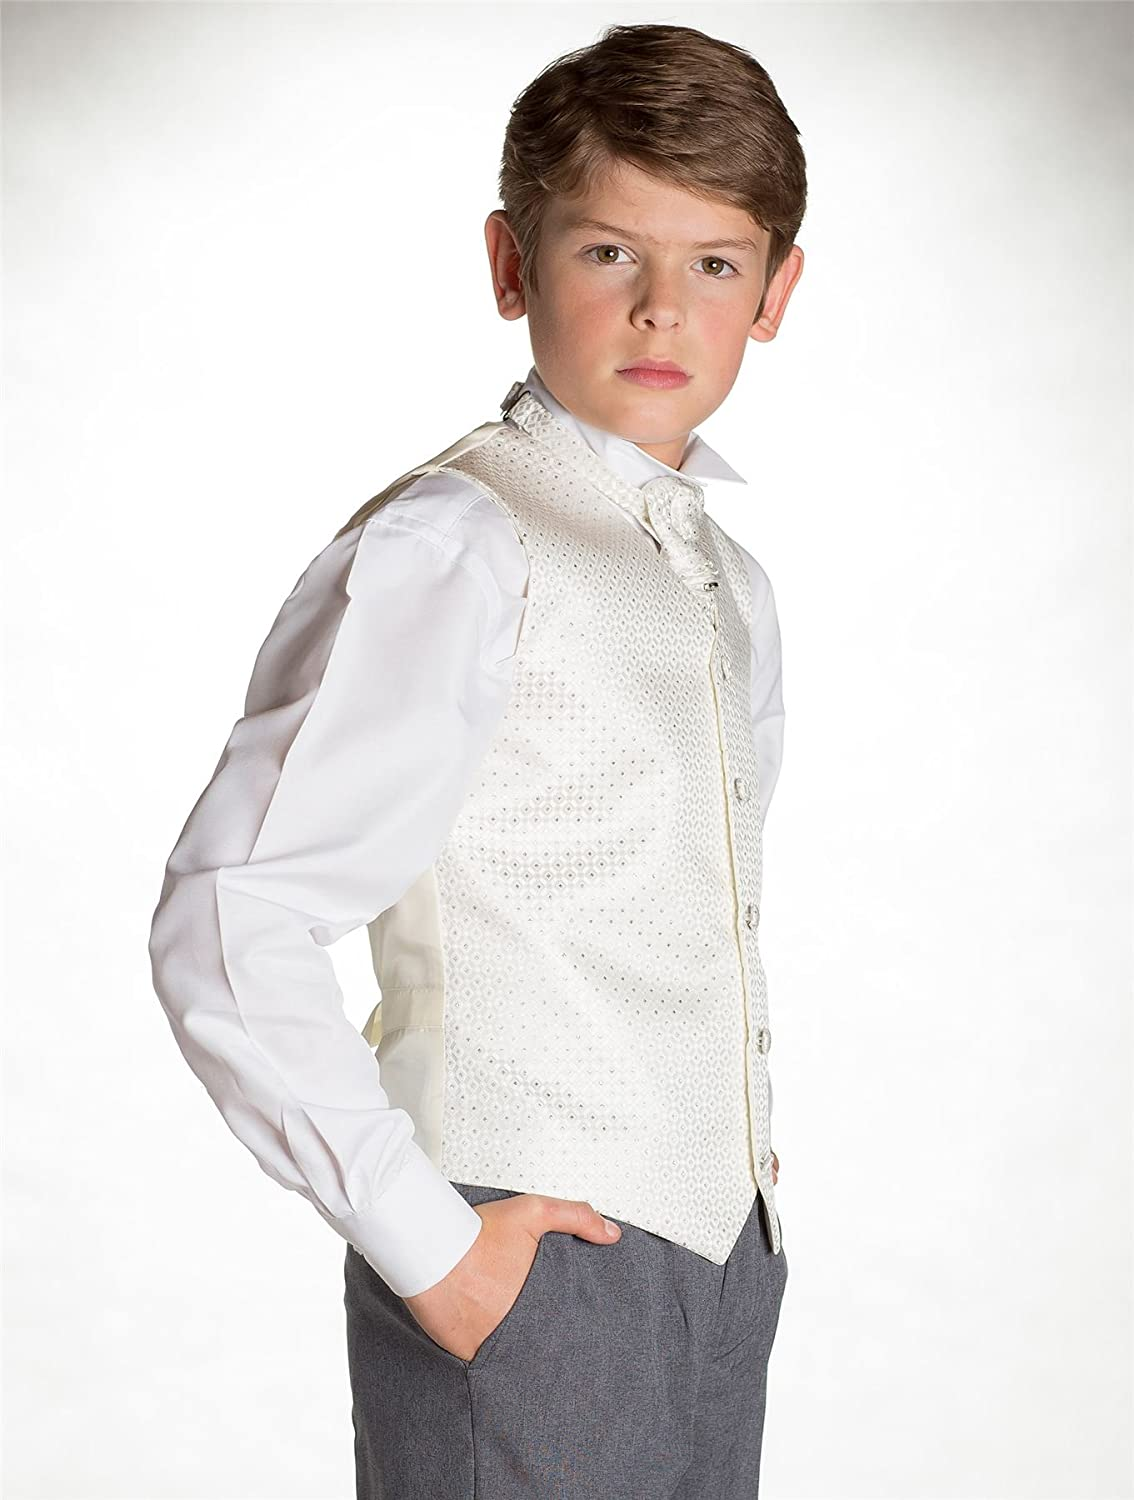 Baby boys Ivory /& Grey Waistcoat Suit Page Boy Suits Boys Suits Paisley of London